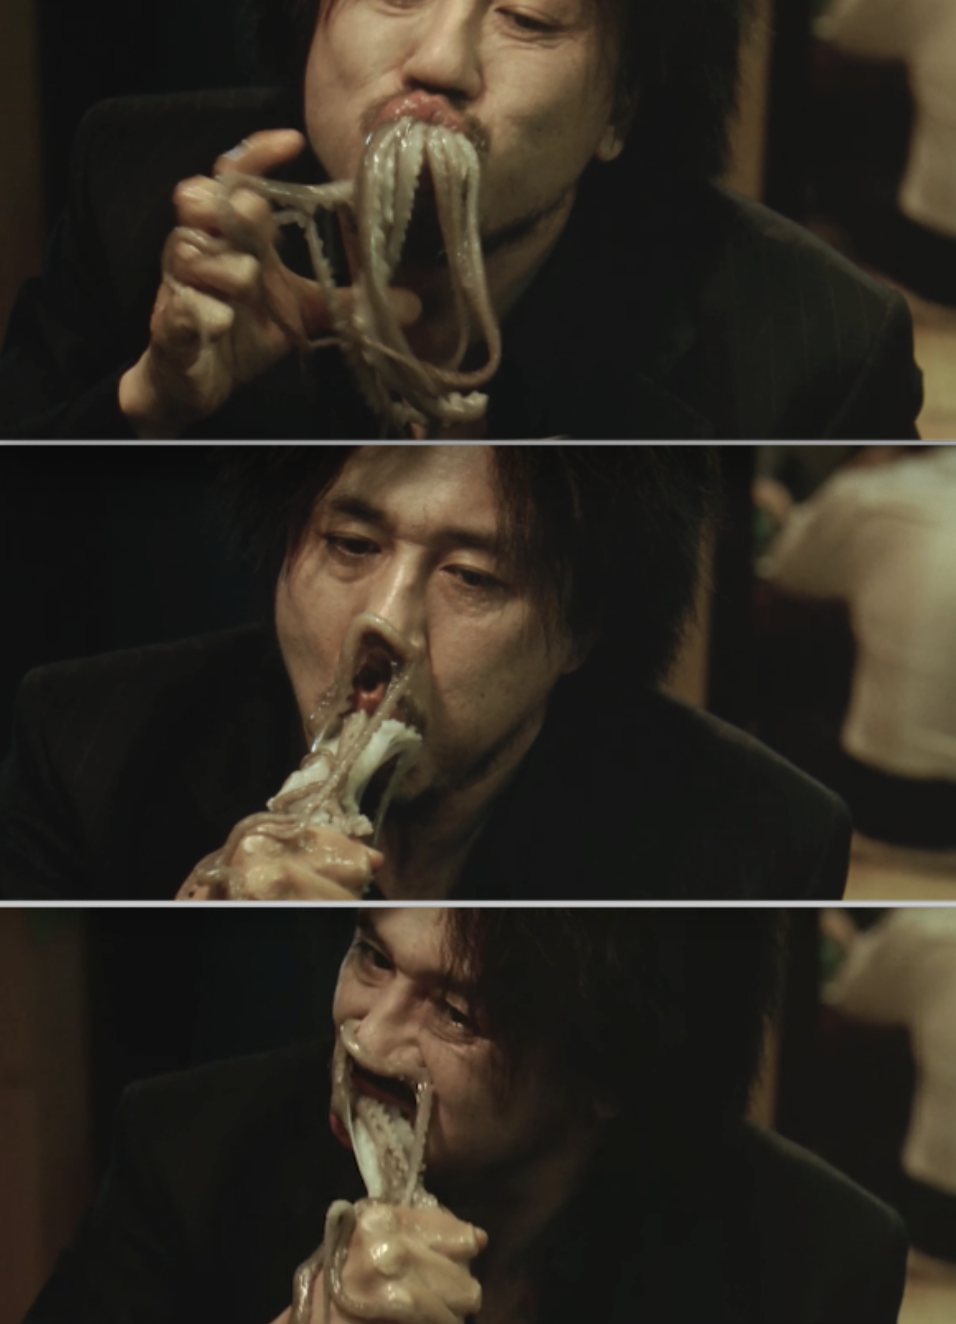 Dae-su eating a whole, live octopus in the restaurant